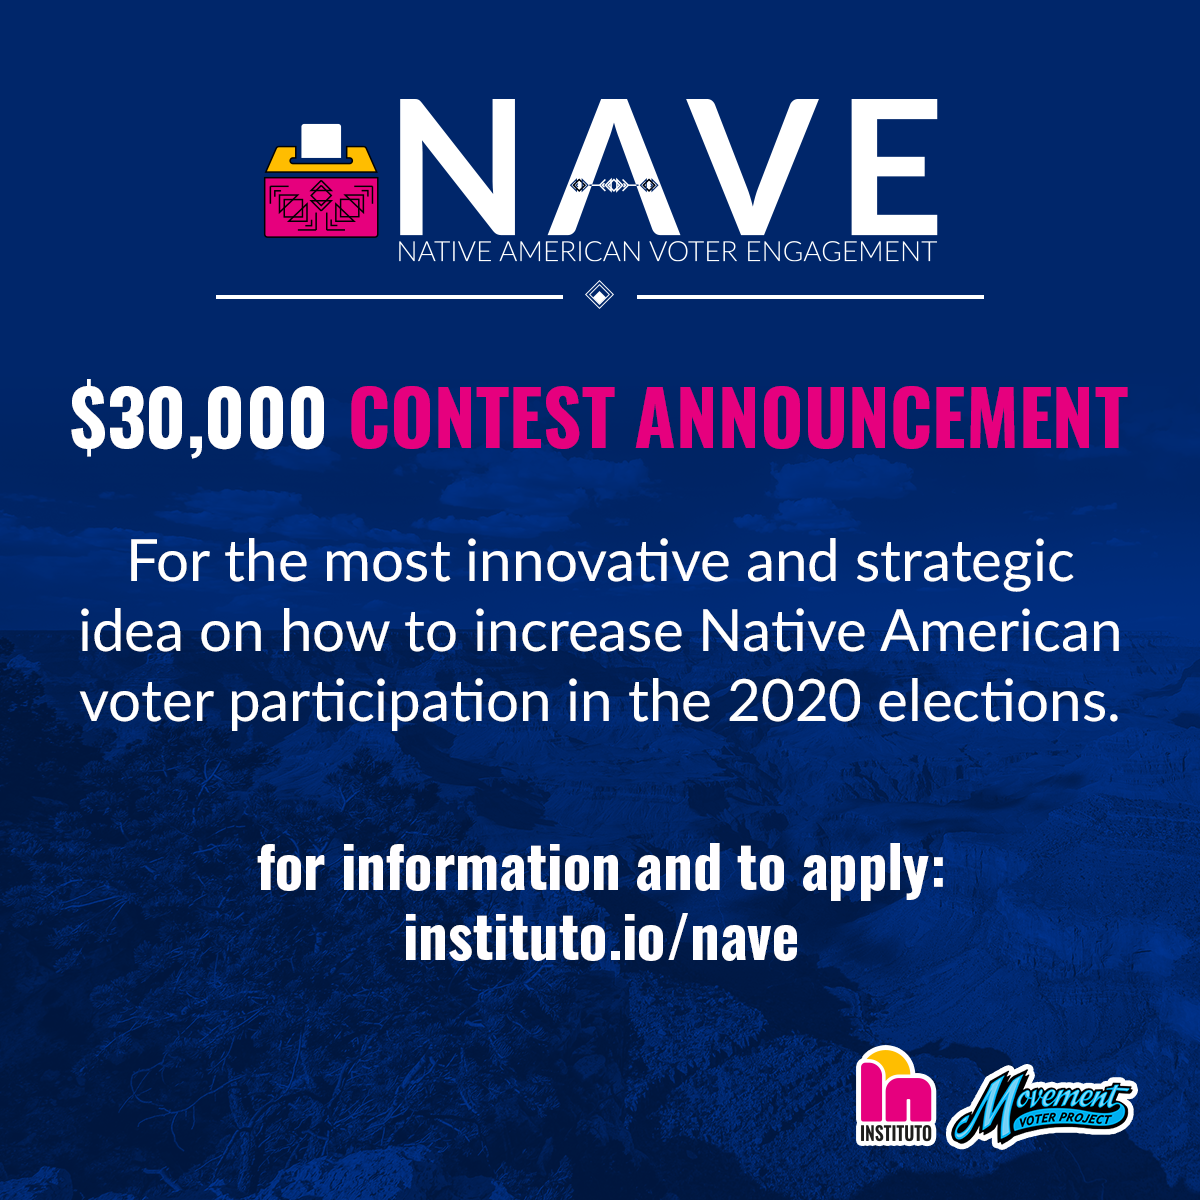 Pictured: Instituto $30,000 Native American Voter Engagement contest announcement.